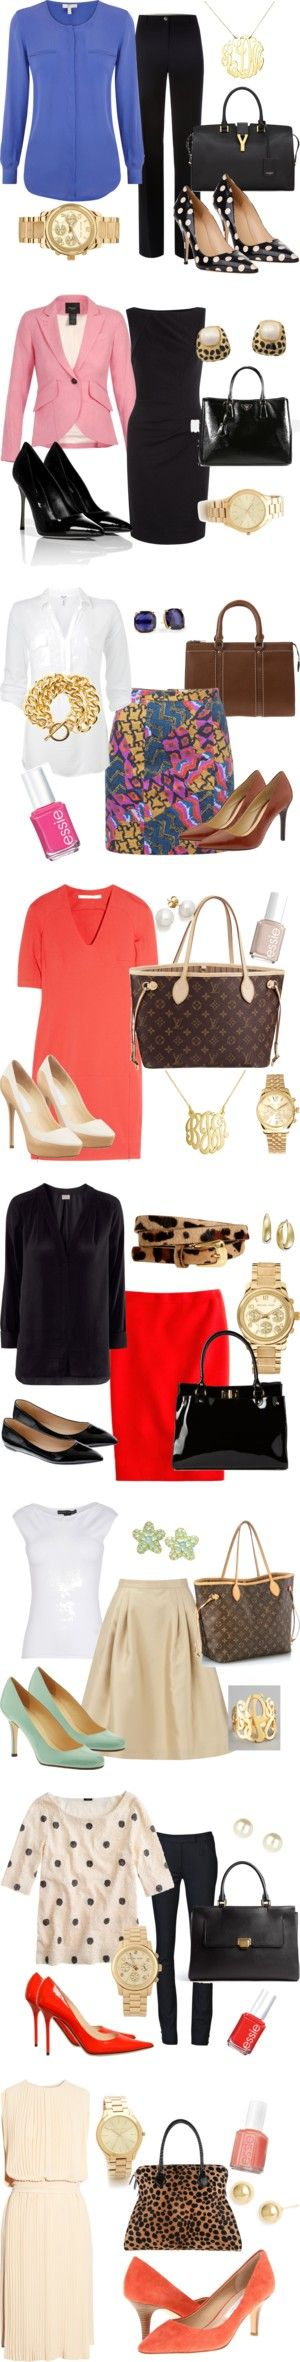 """""""Work Clothes 2013"""" by kekilian on Polyvore"""